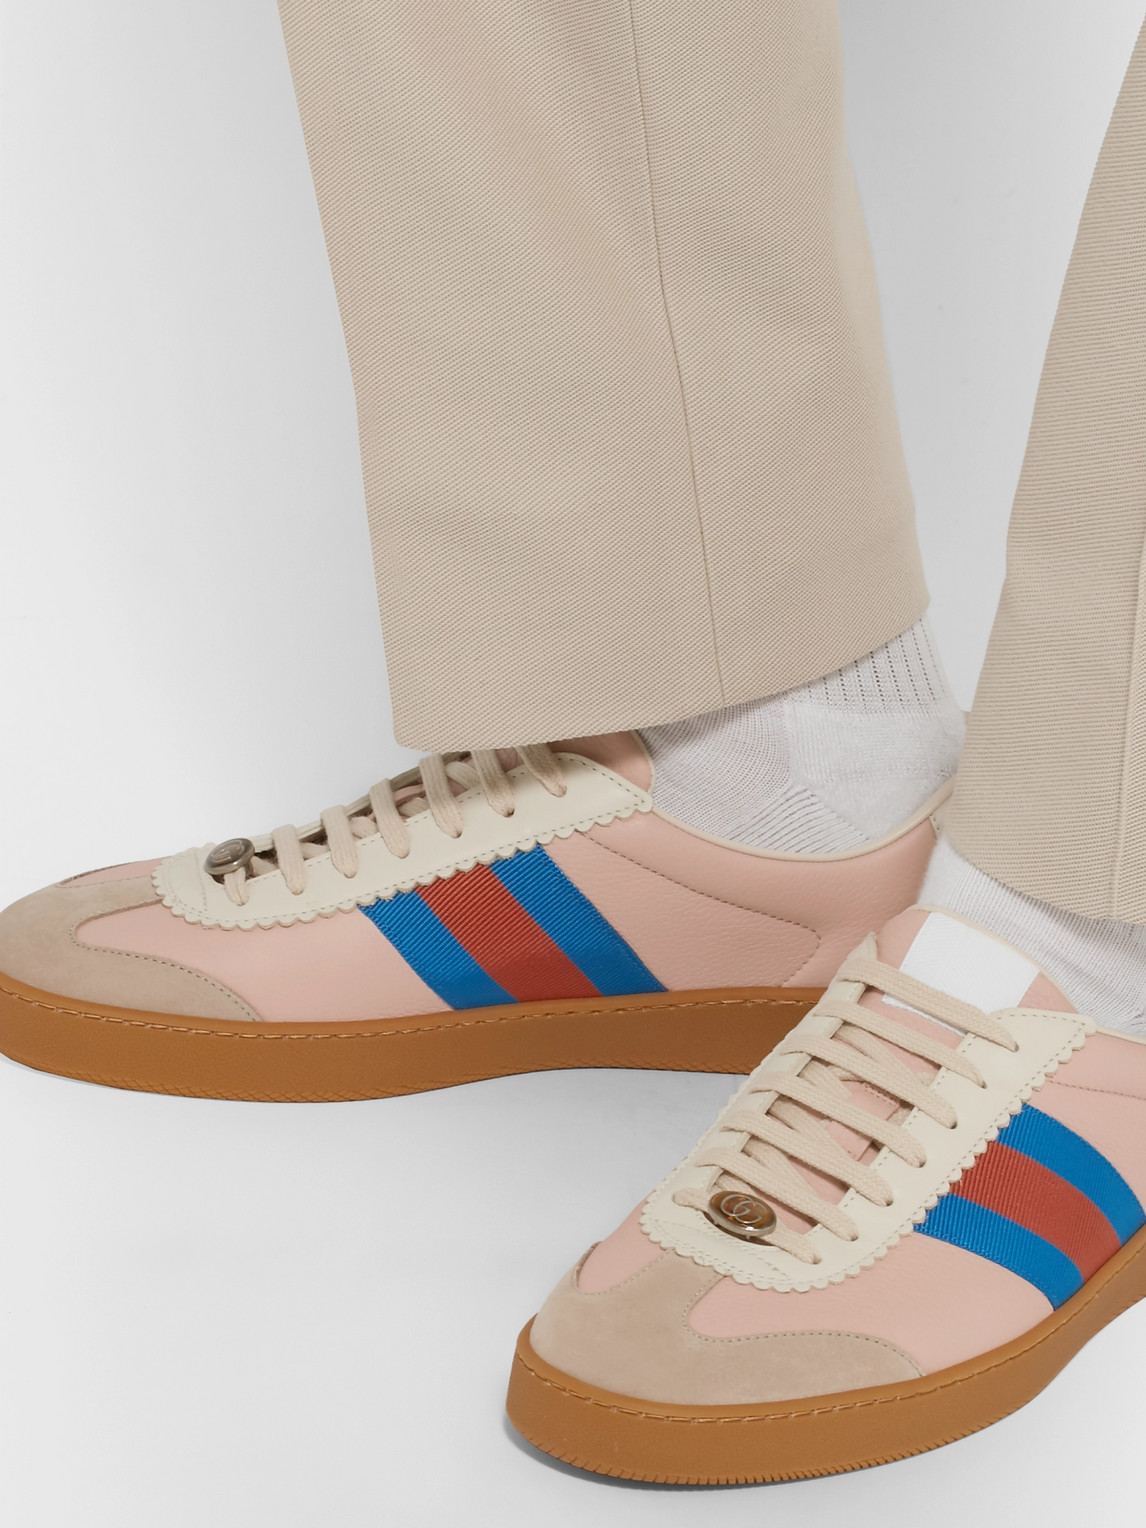 Gucci Sneakers JBG WEBBING-TRIMMED LEATHER AND SUEDE SNEAKERS